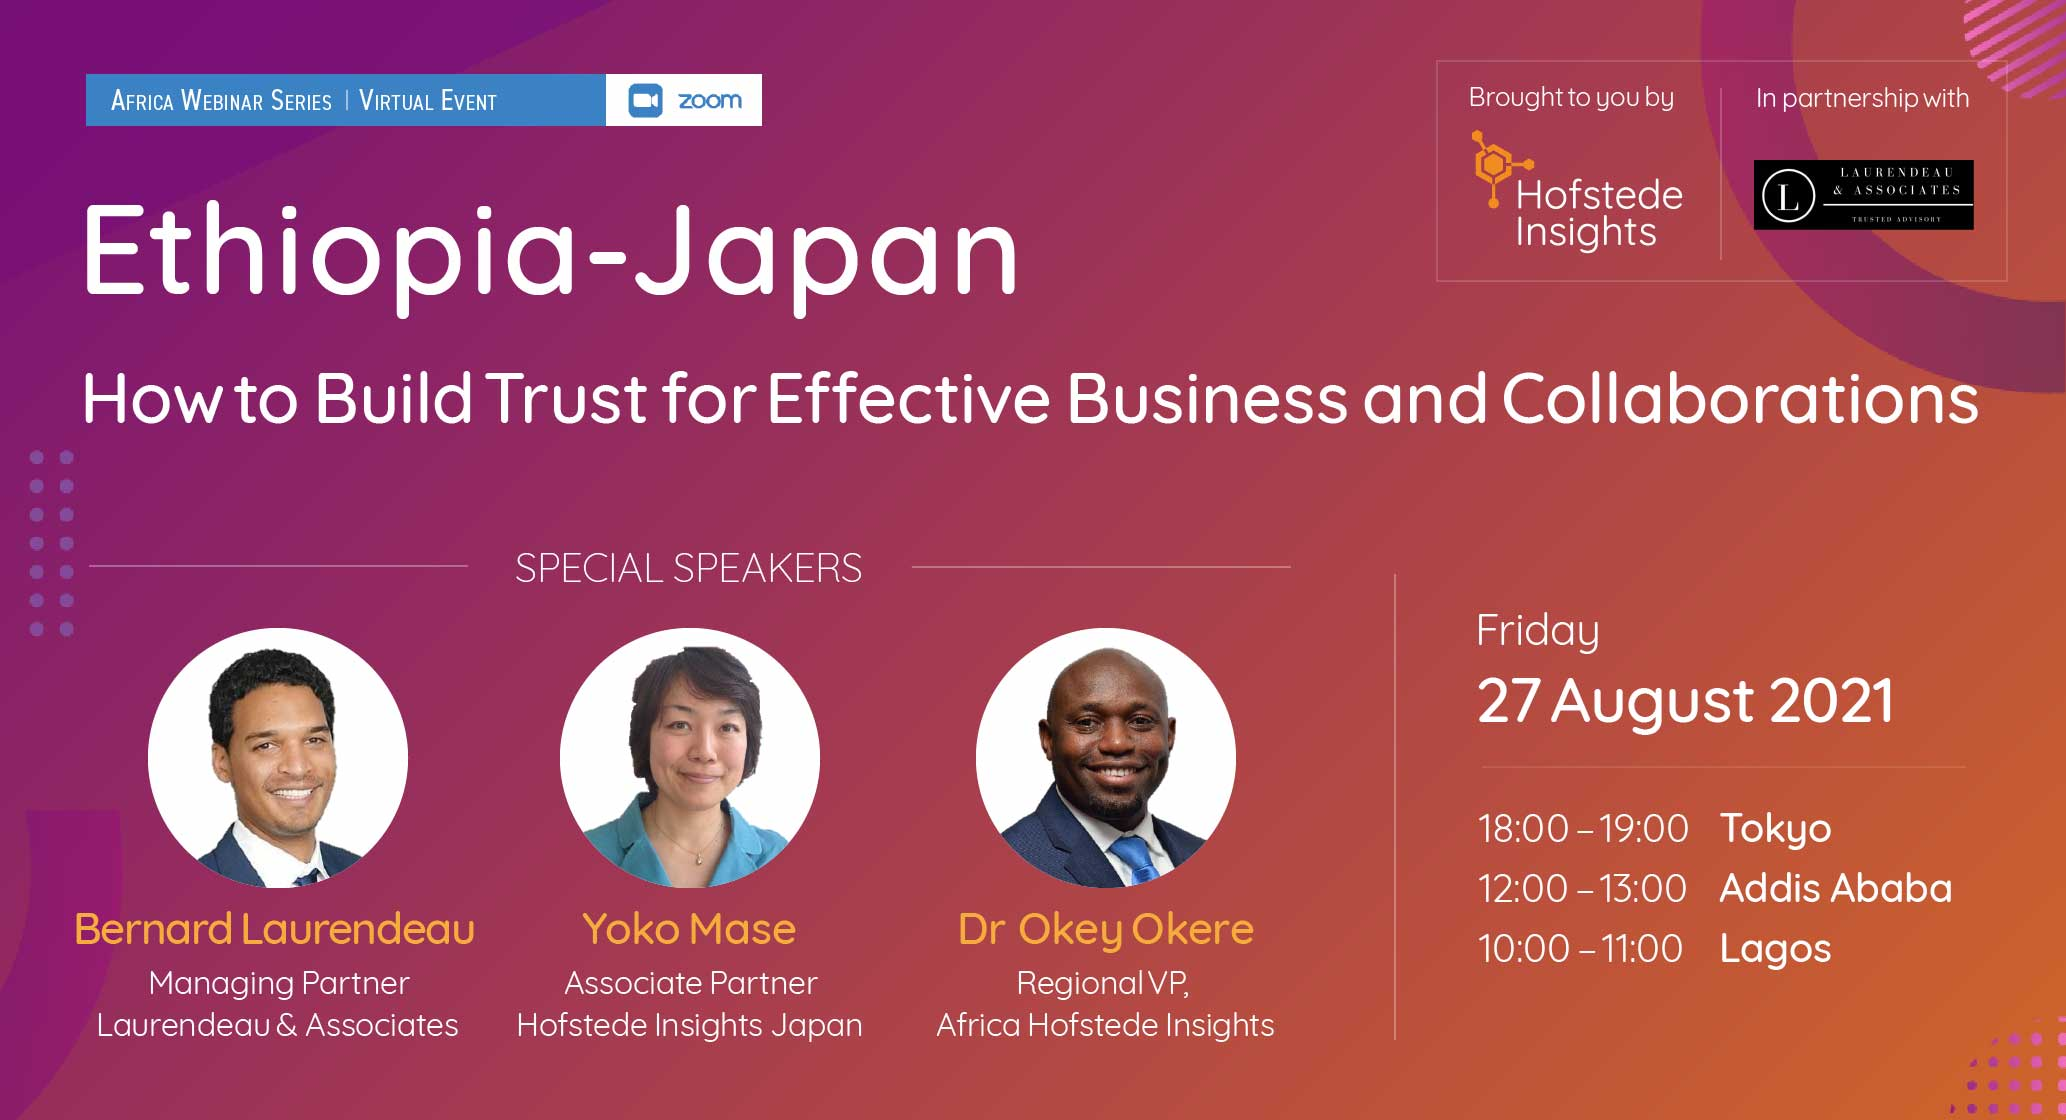 Ethiopia-Japan: How to Build Trust for Effective Business and Collaborations